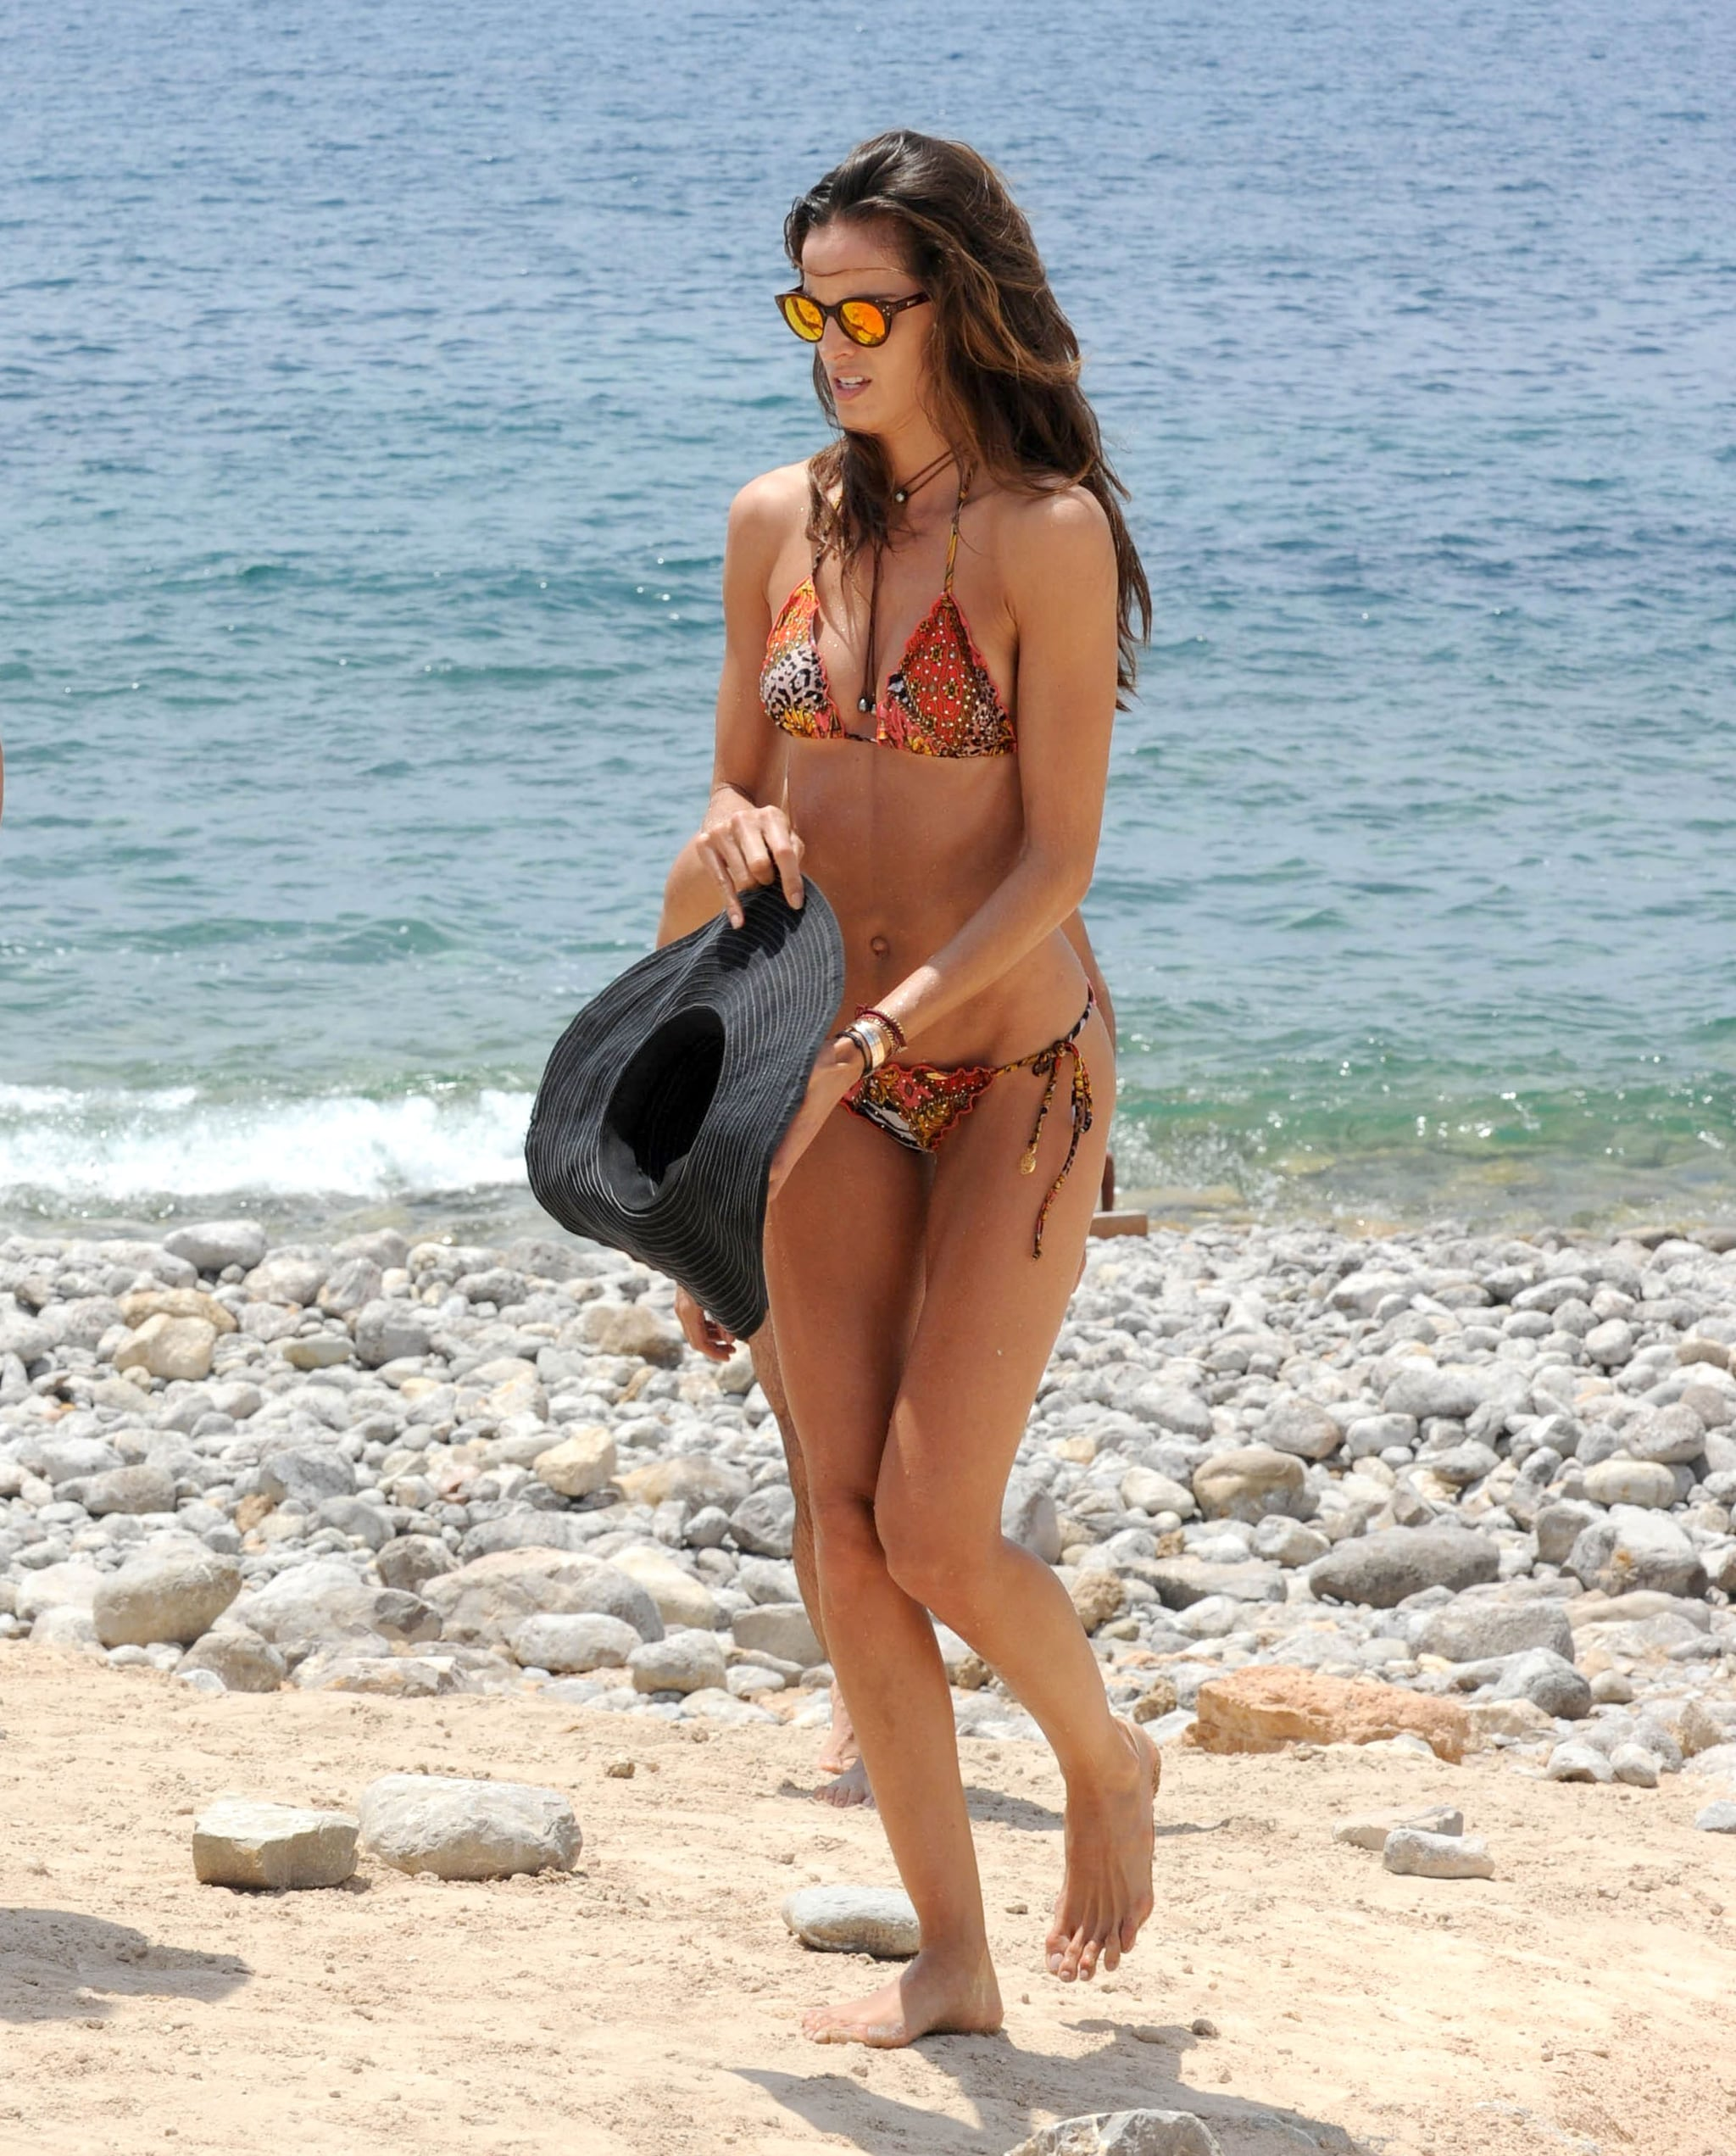 Model Izabel Goulart showed off her bikini body during a beach day in Ibiza on Monday.